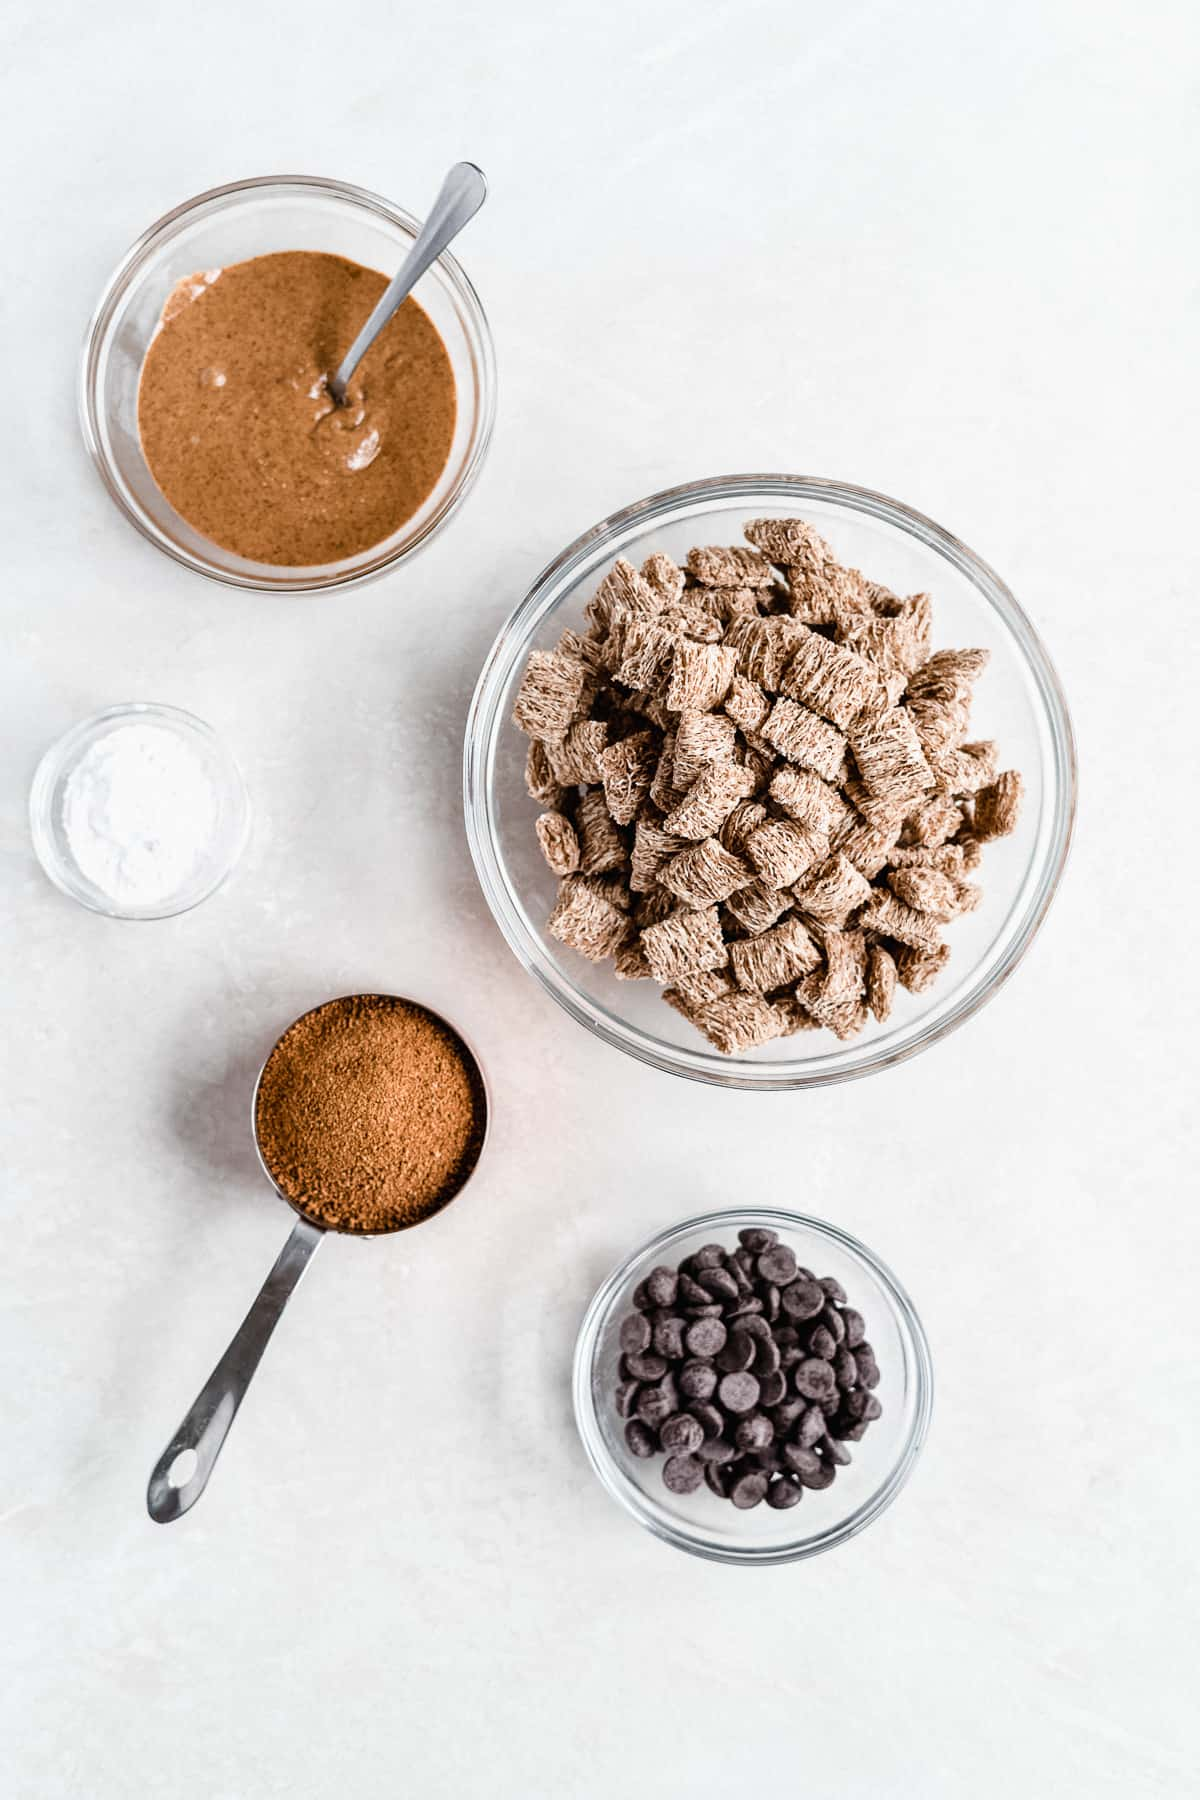 Overhead photo of the 5 ingredients needed to make Healthy Puppy Chow arranged on a white background.